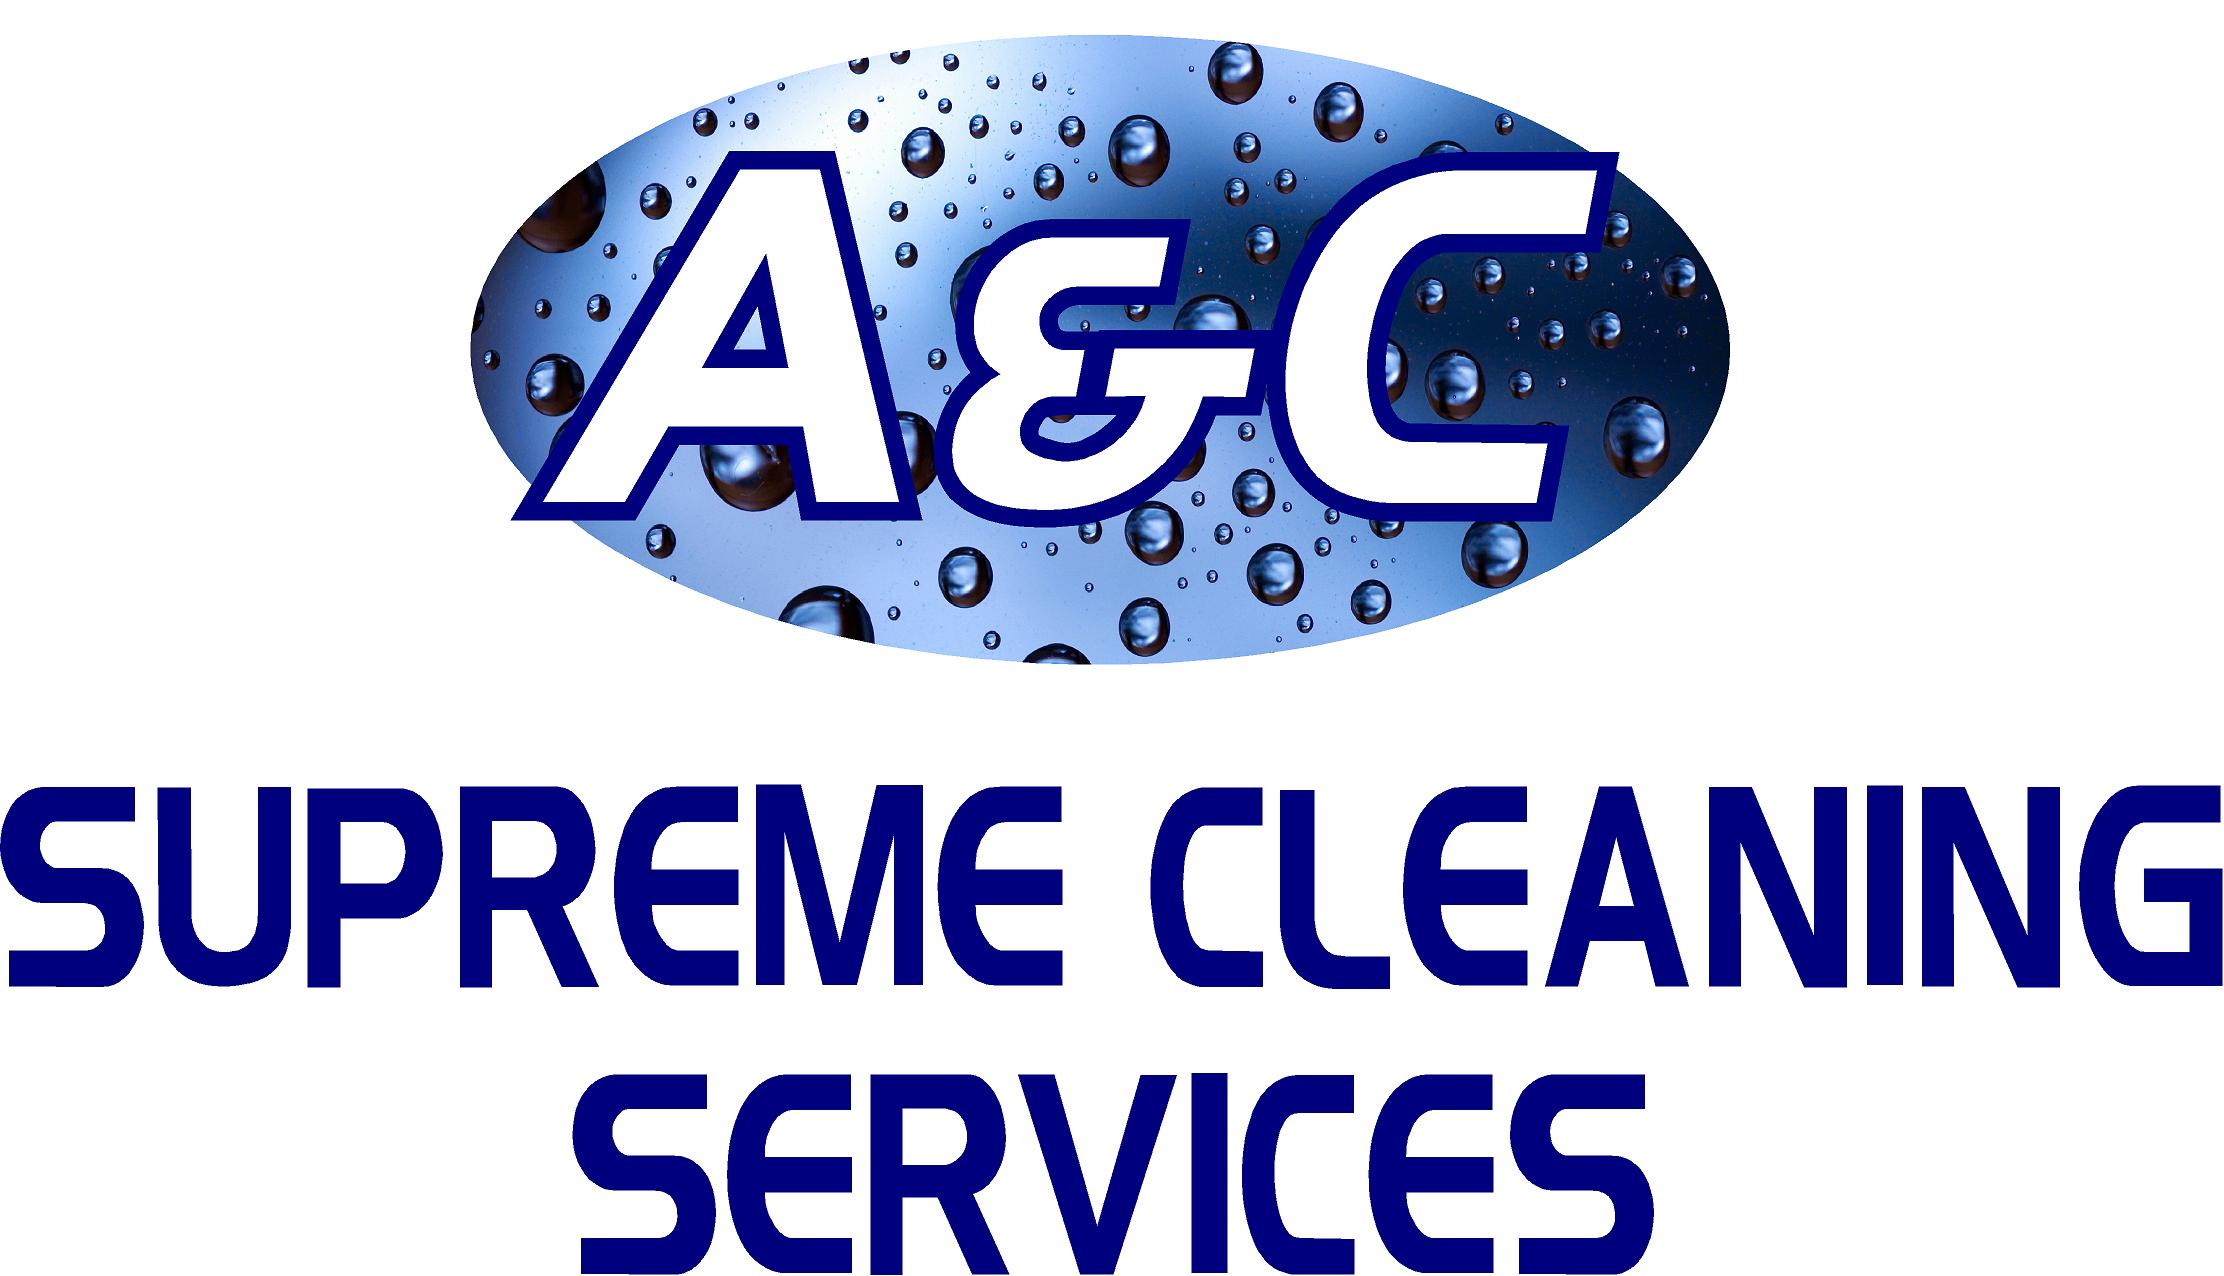 A&C Supreme Cleaning Services  - Wheelie Bin, Patio, Conservatory & Window Cleaners in North London, Essex and Hertfordshire